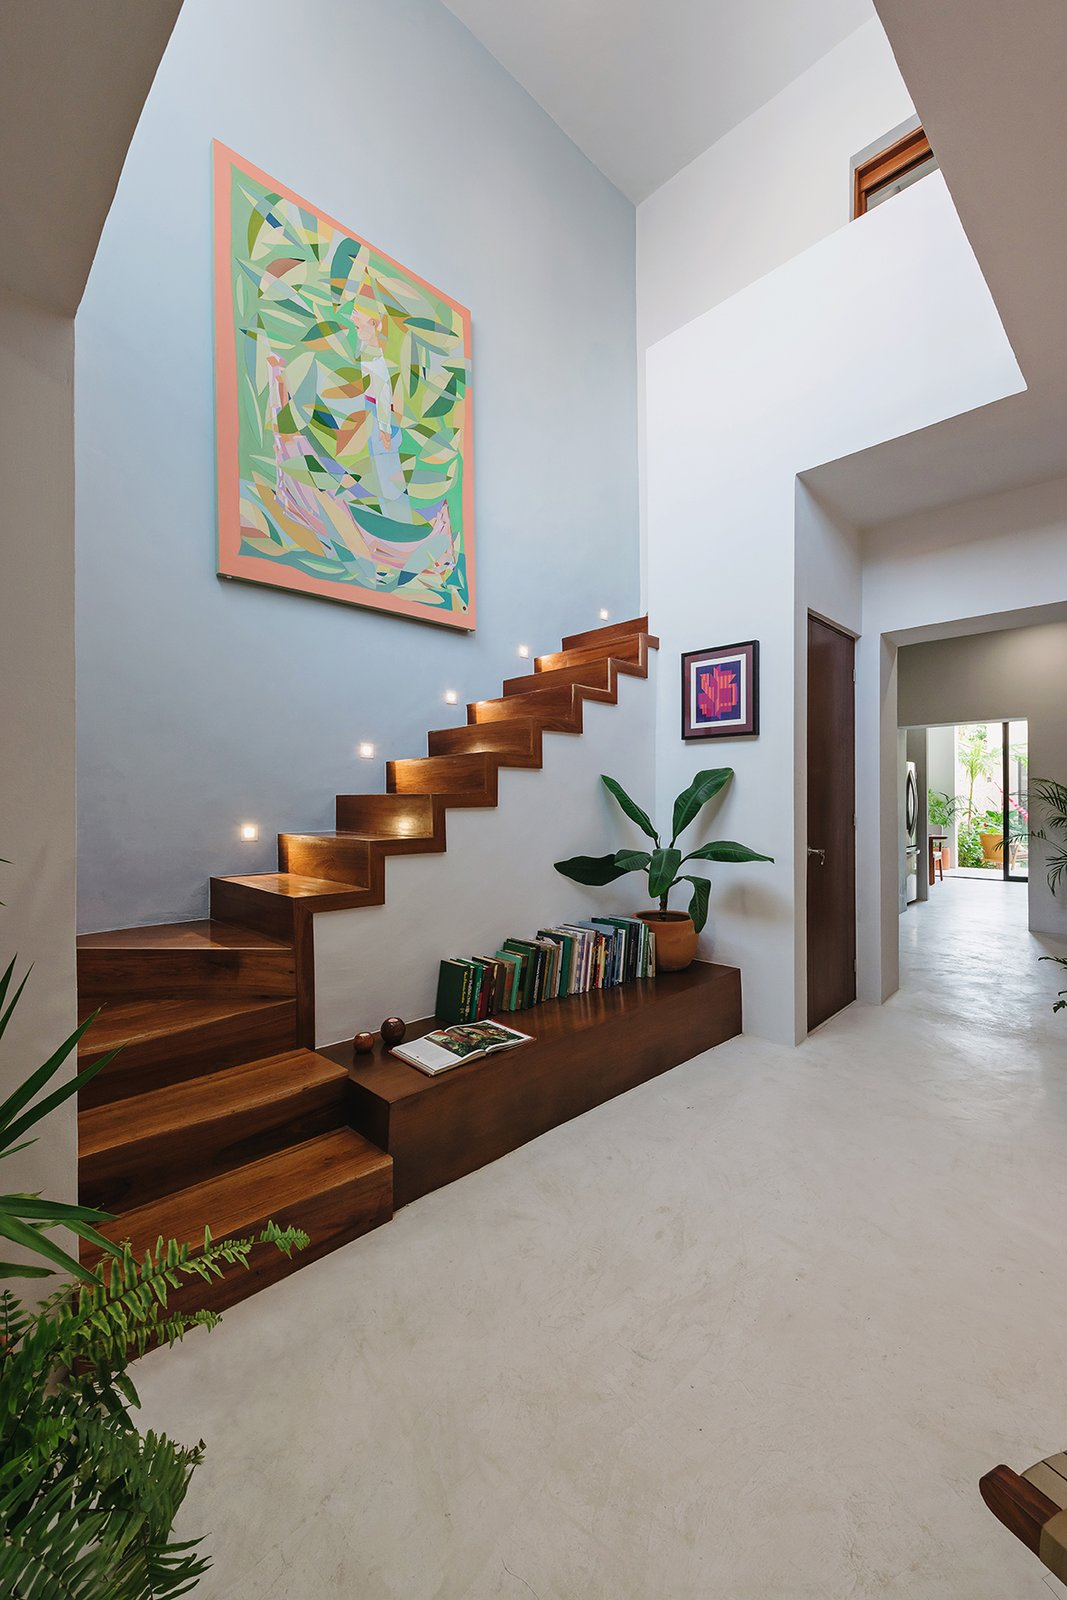 Staircase and Wood Tread Staircase  Photo 2 of 6 in Top 5 Homes of the Week With Captivating Staircases from Casa Picasso